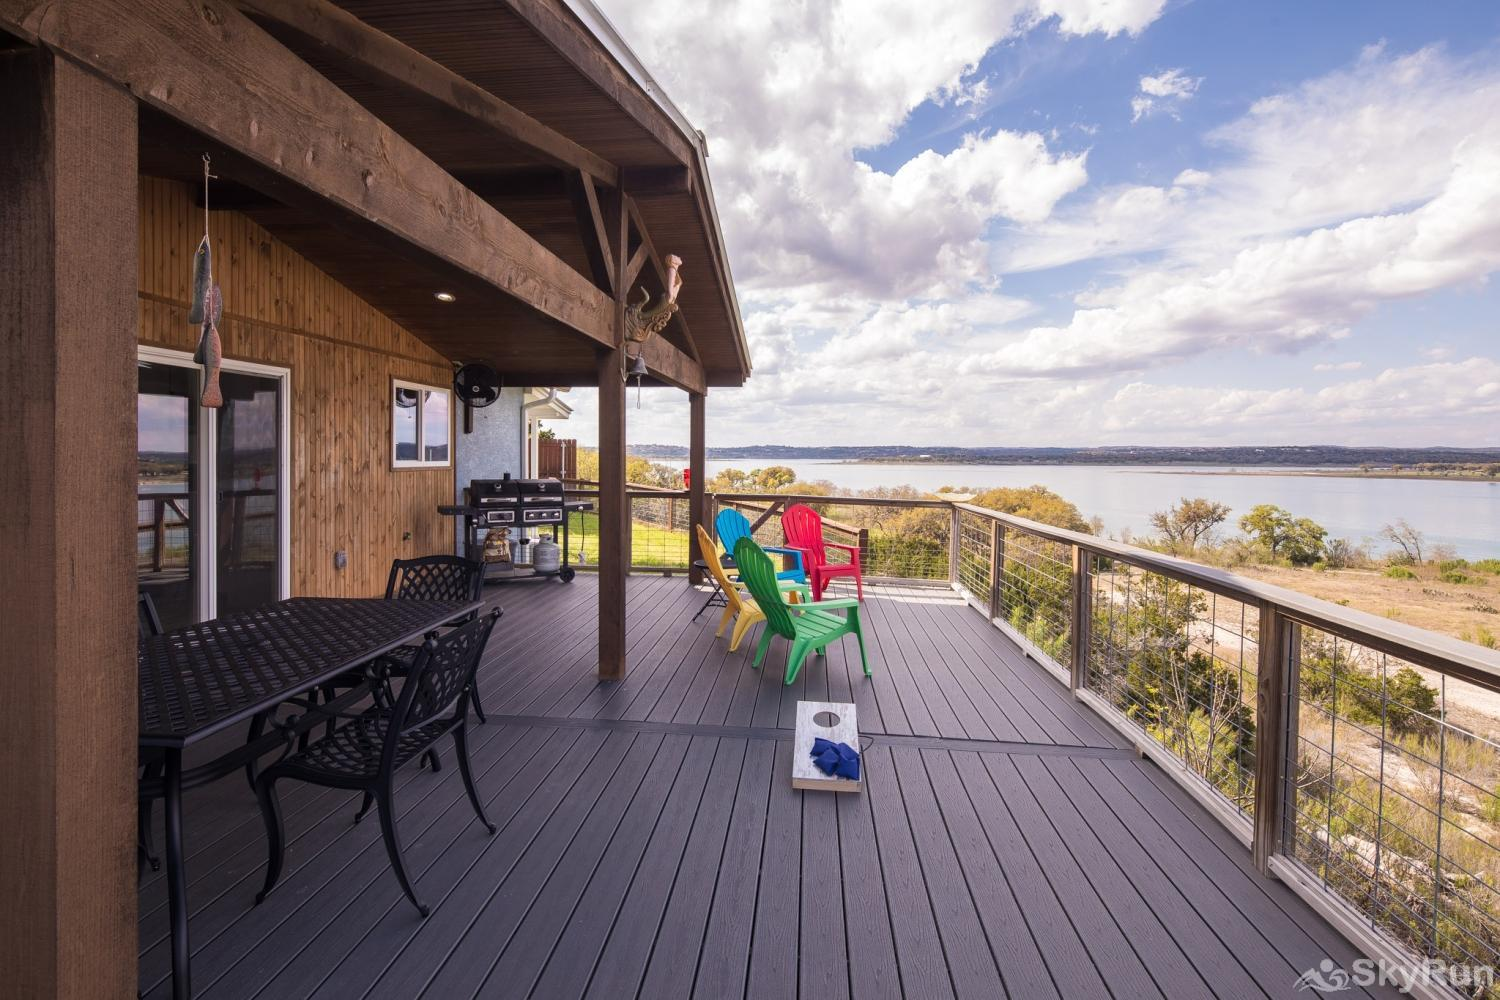 LEDGEROCK POINTE Ample deck space for your entire group to enjoy